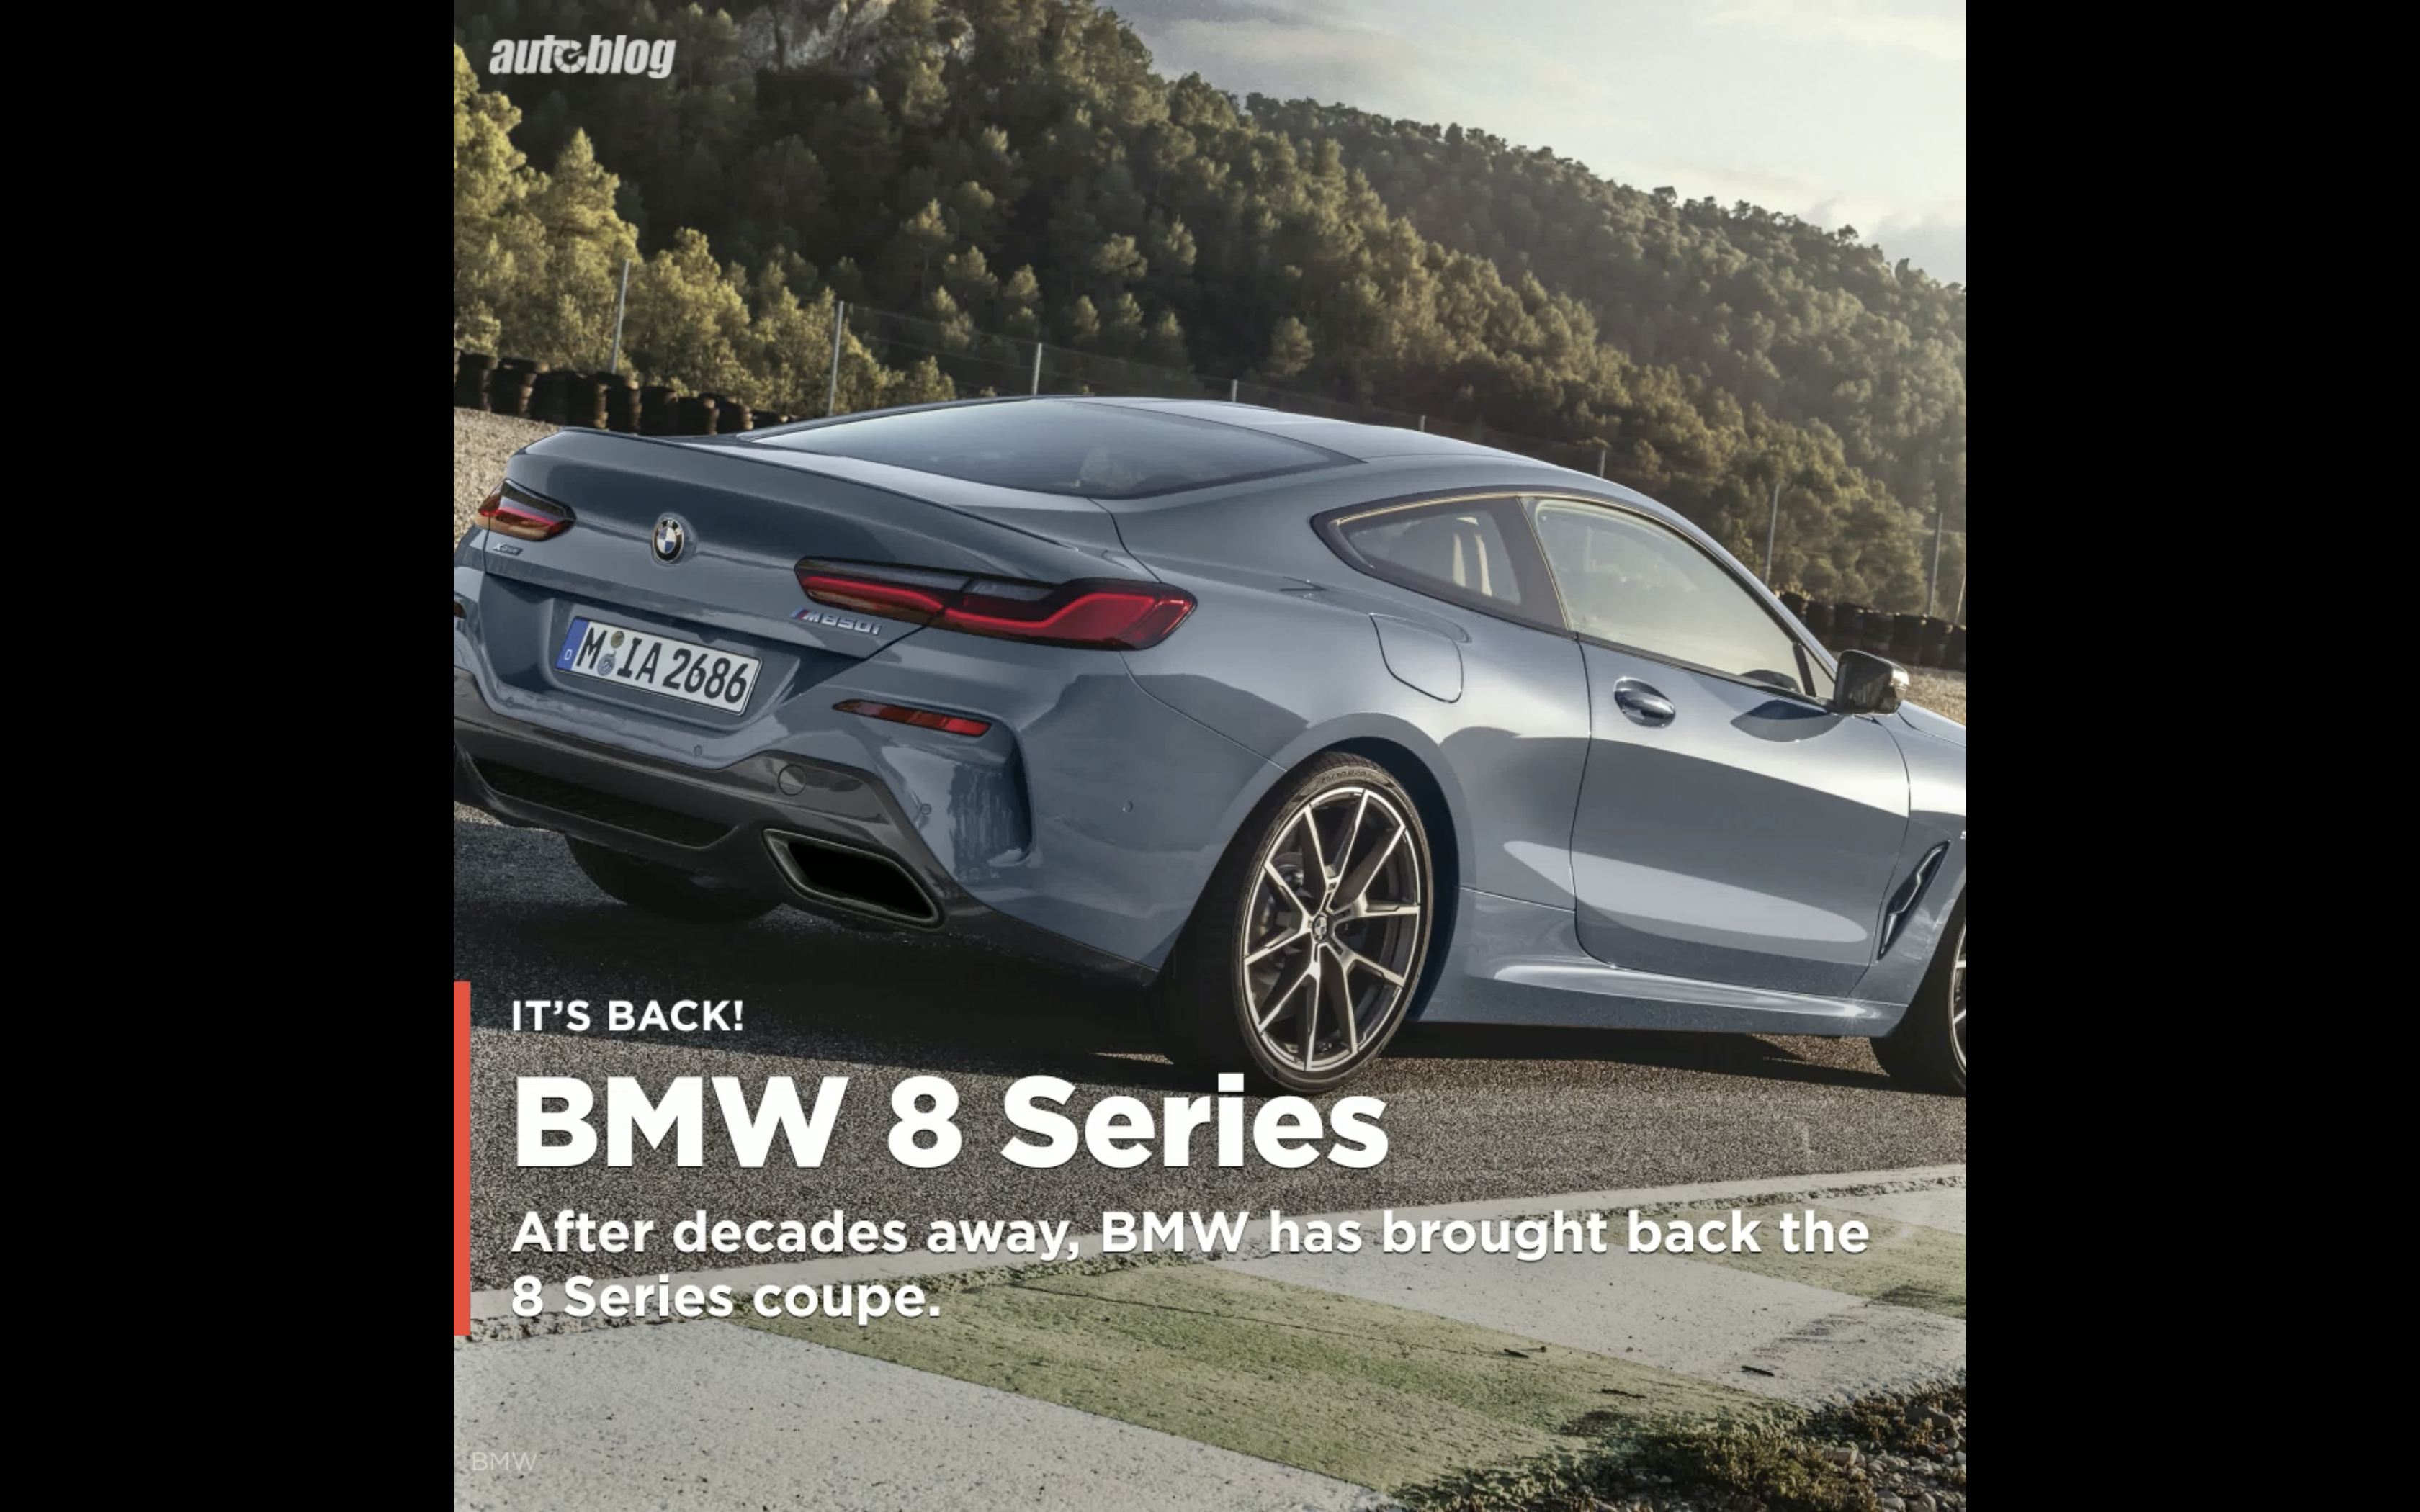 BMW reveals the 2019 8 Series Coupe, and it looks a lot like the concept